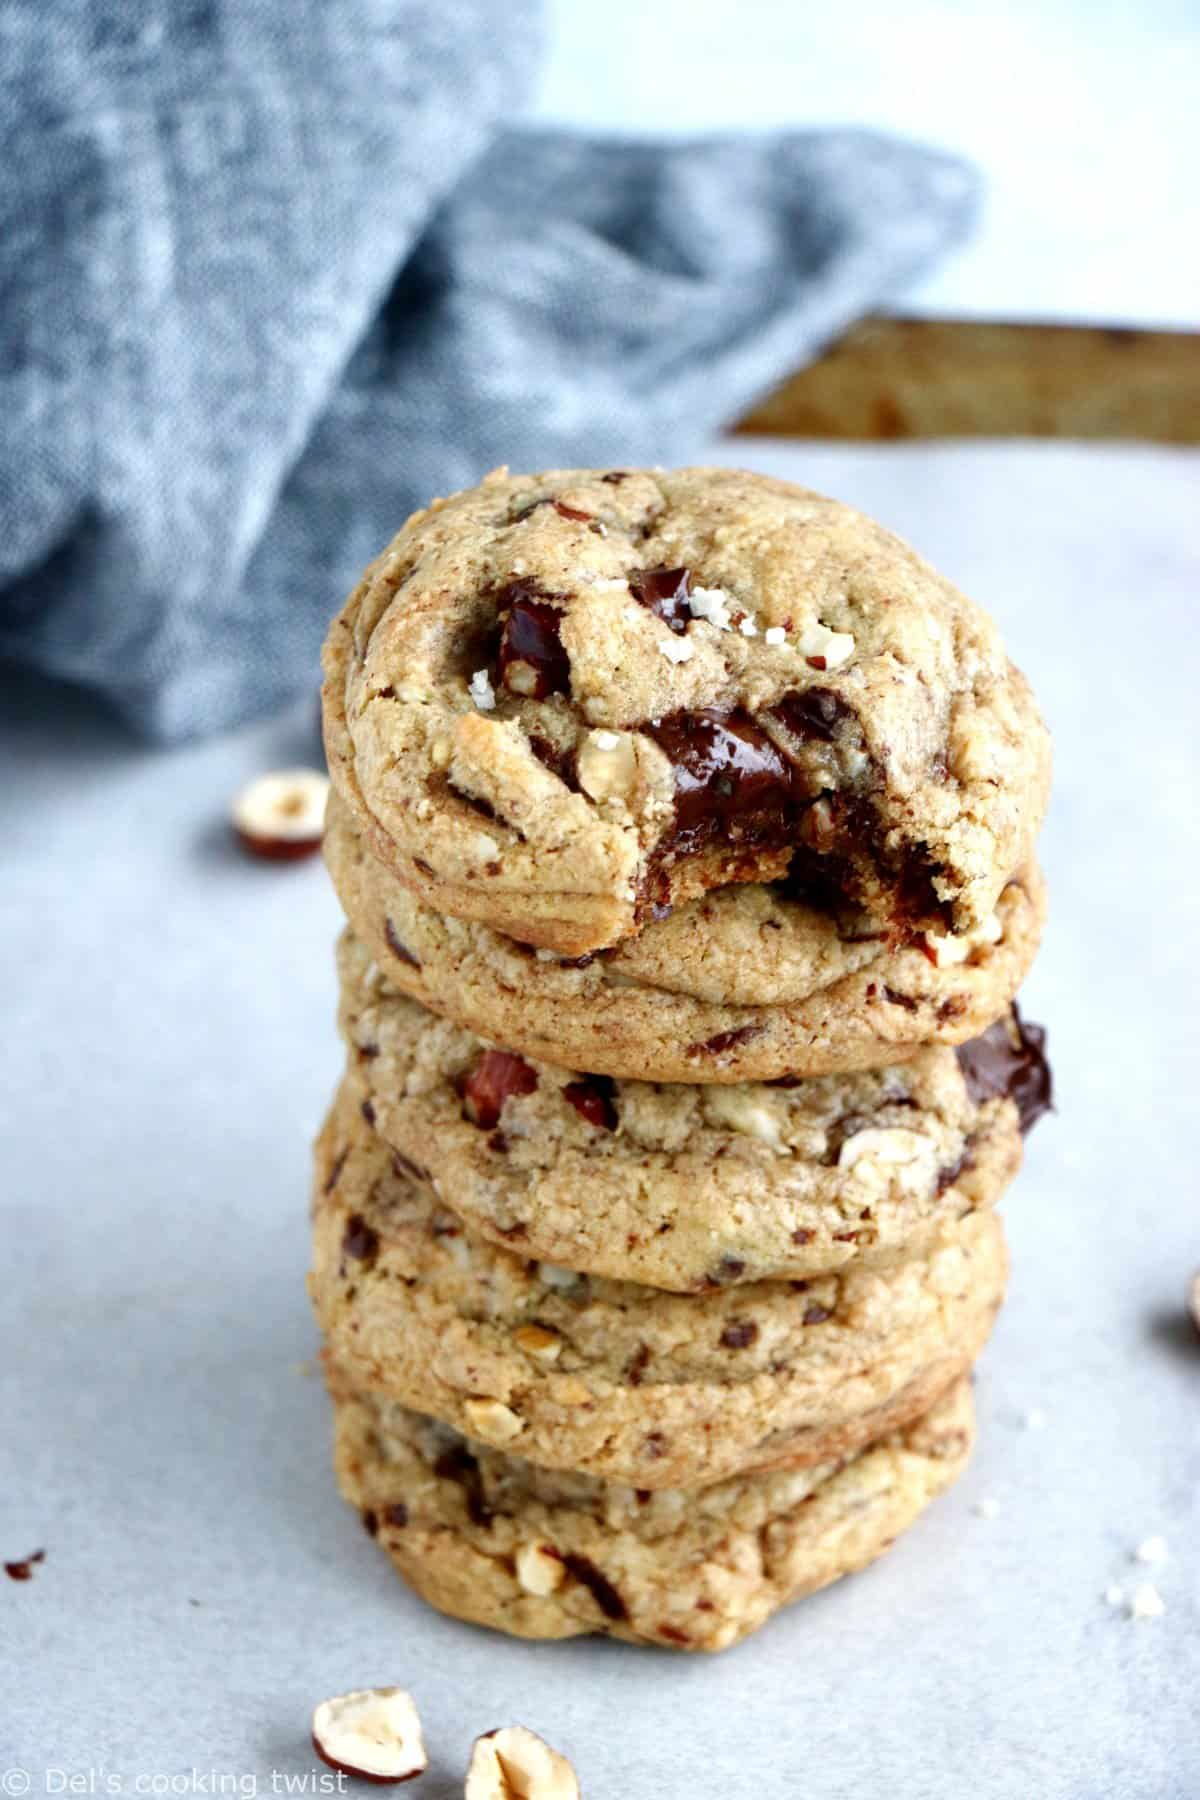 Hazelnut Chocolate Chunk Cookies